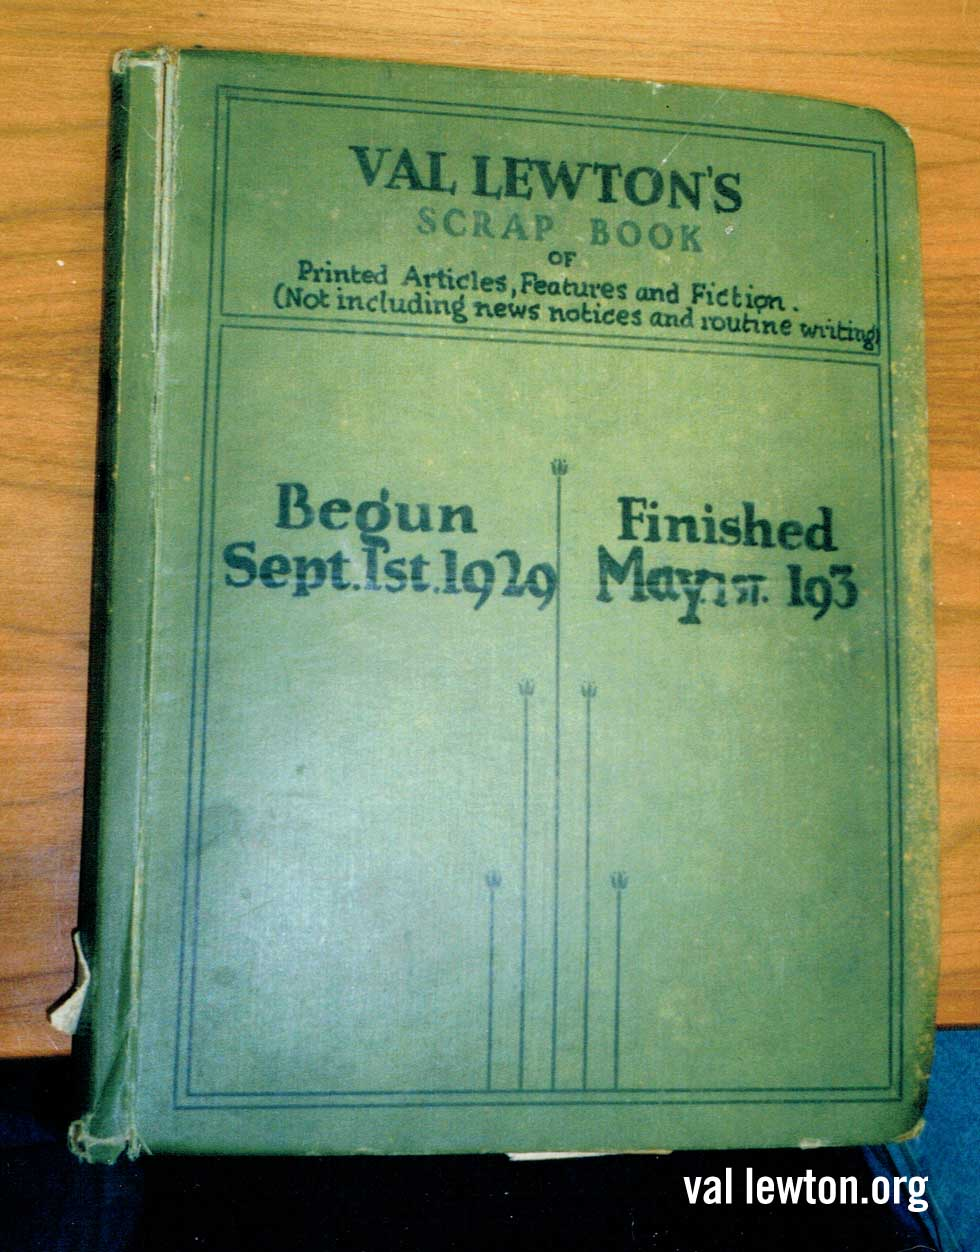 Val Lewton Scrap Book